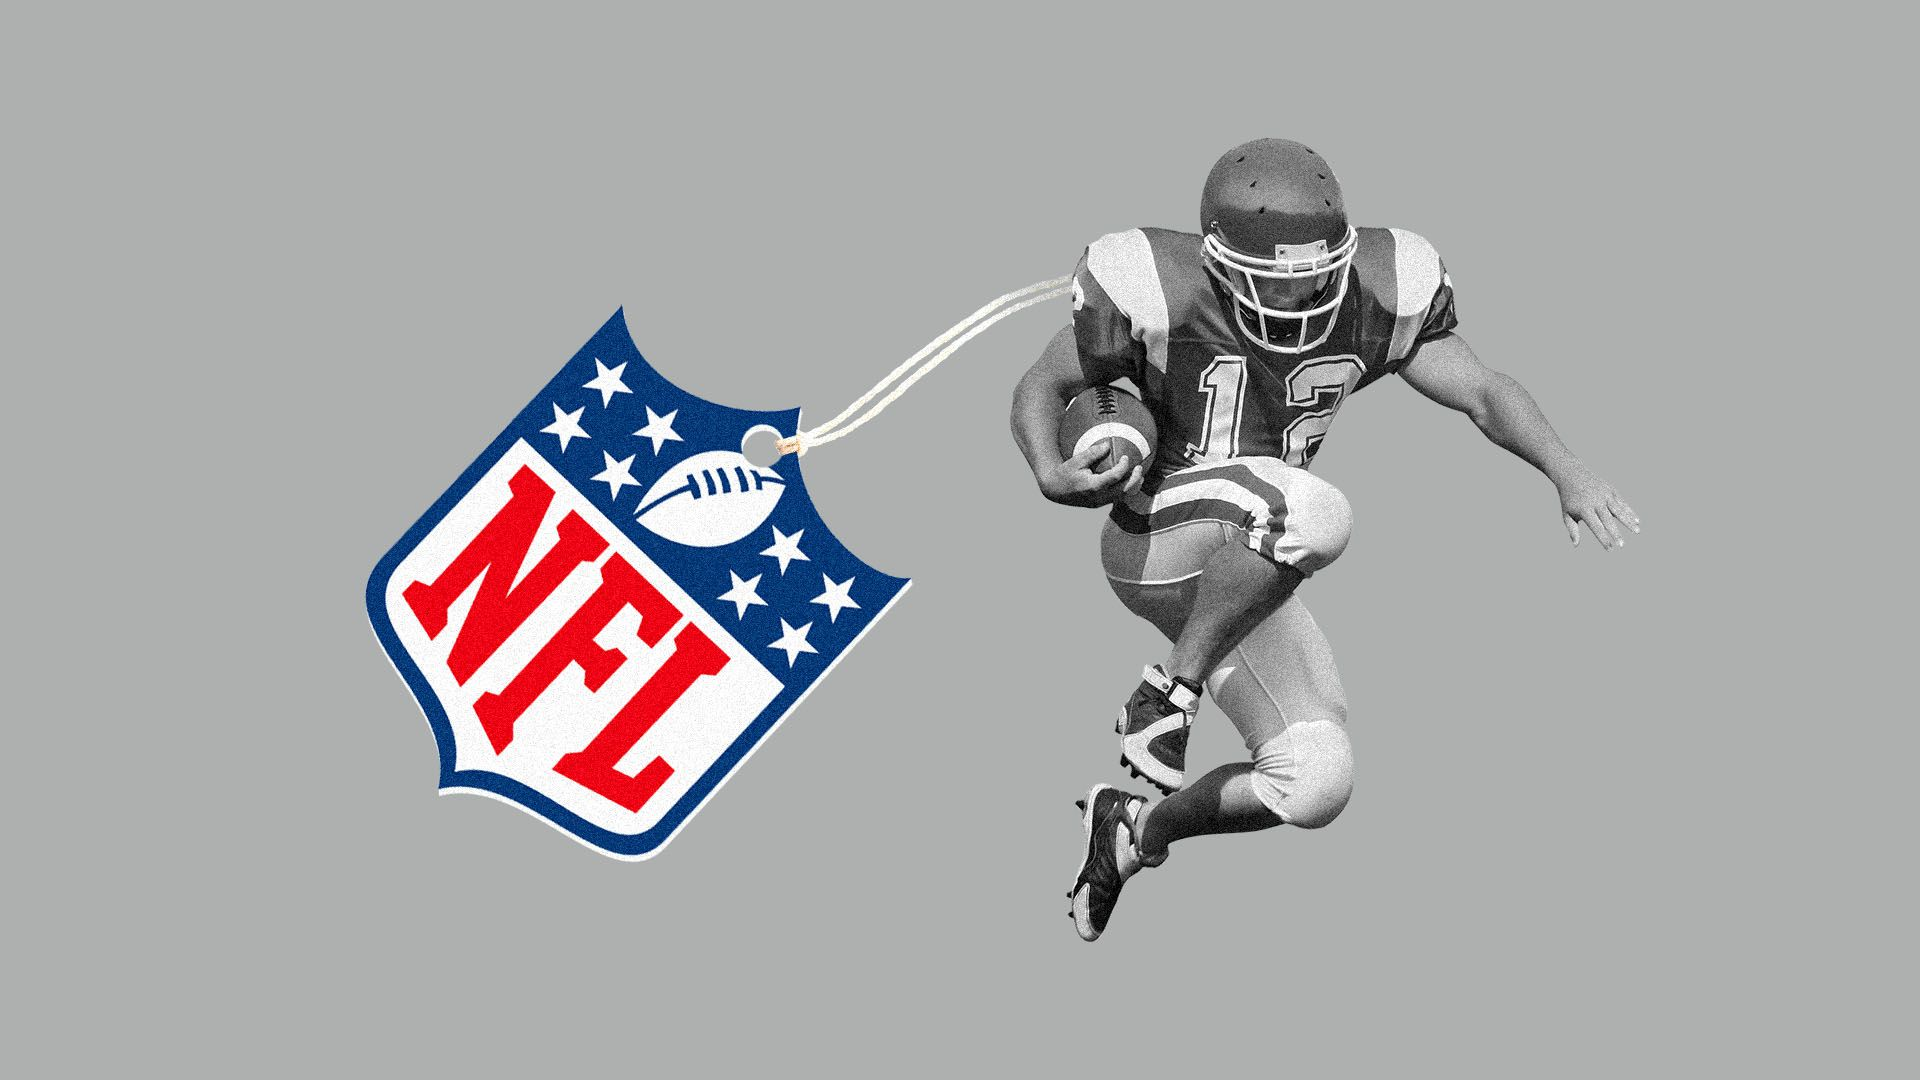 Illustration of football player with giant NFL tag attached to him